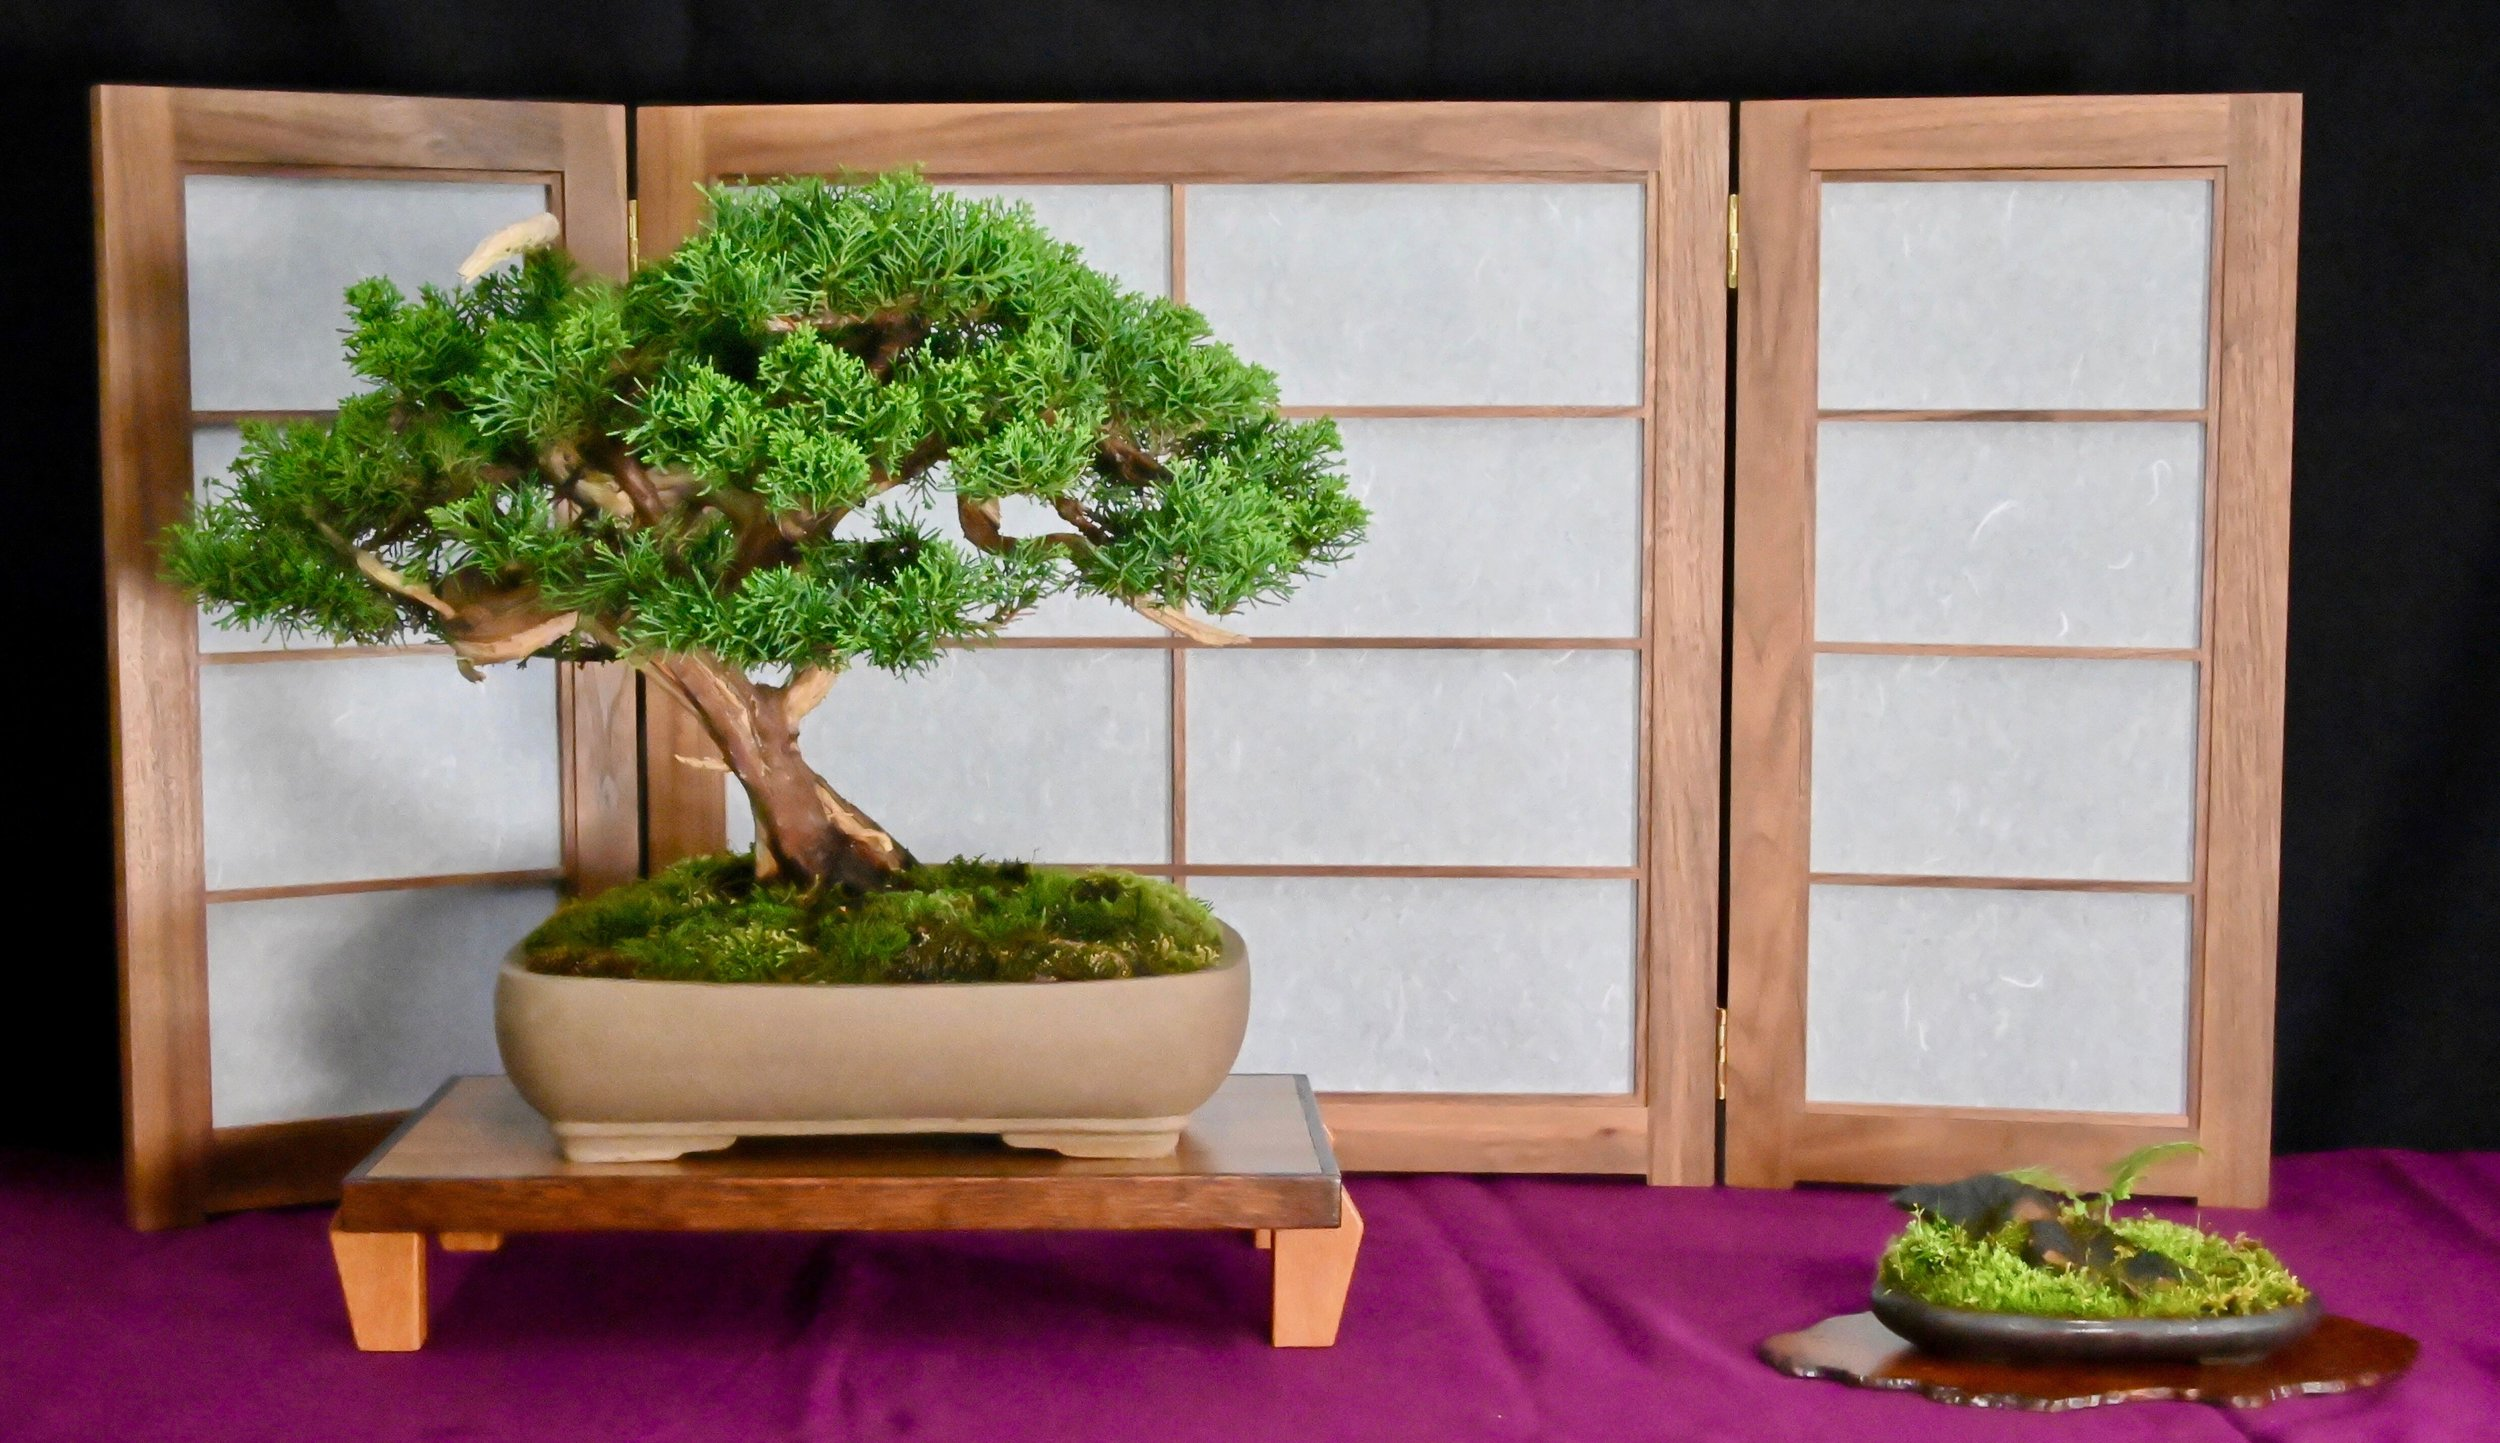 bonsai exhibit 15.jpeg